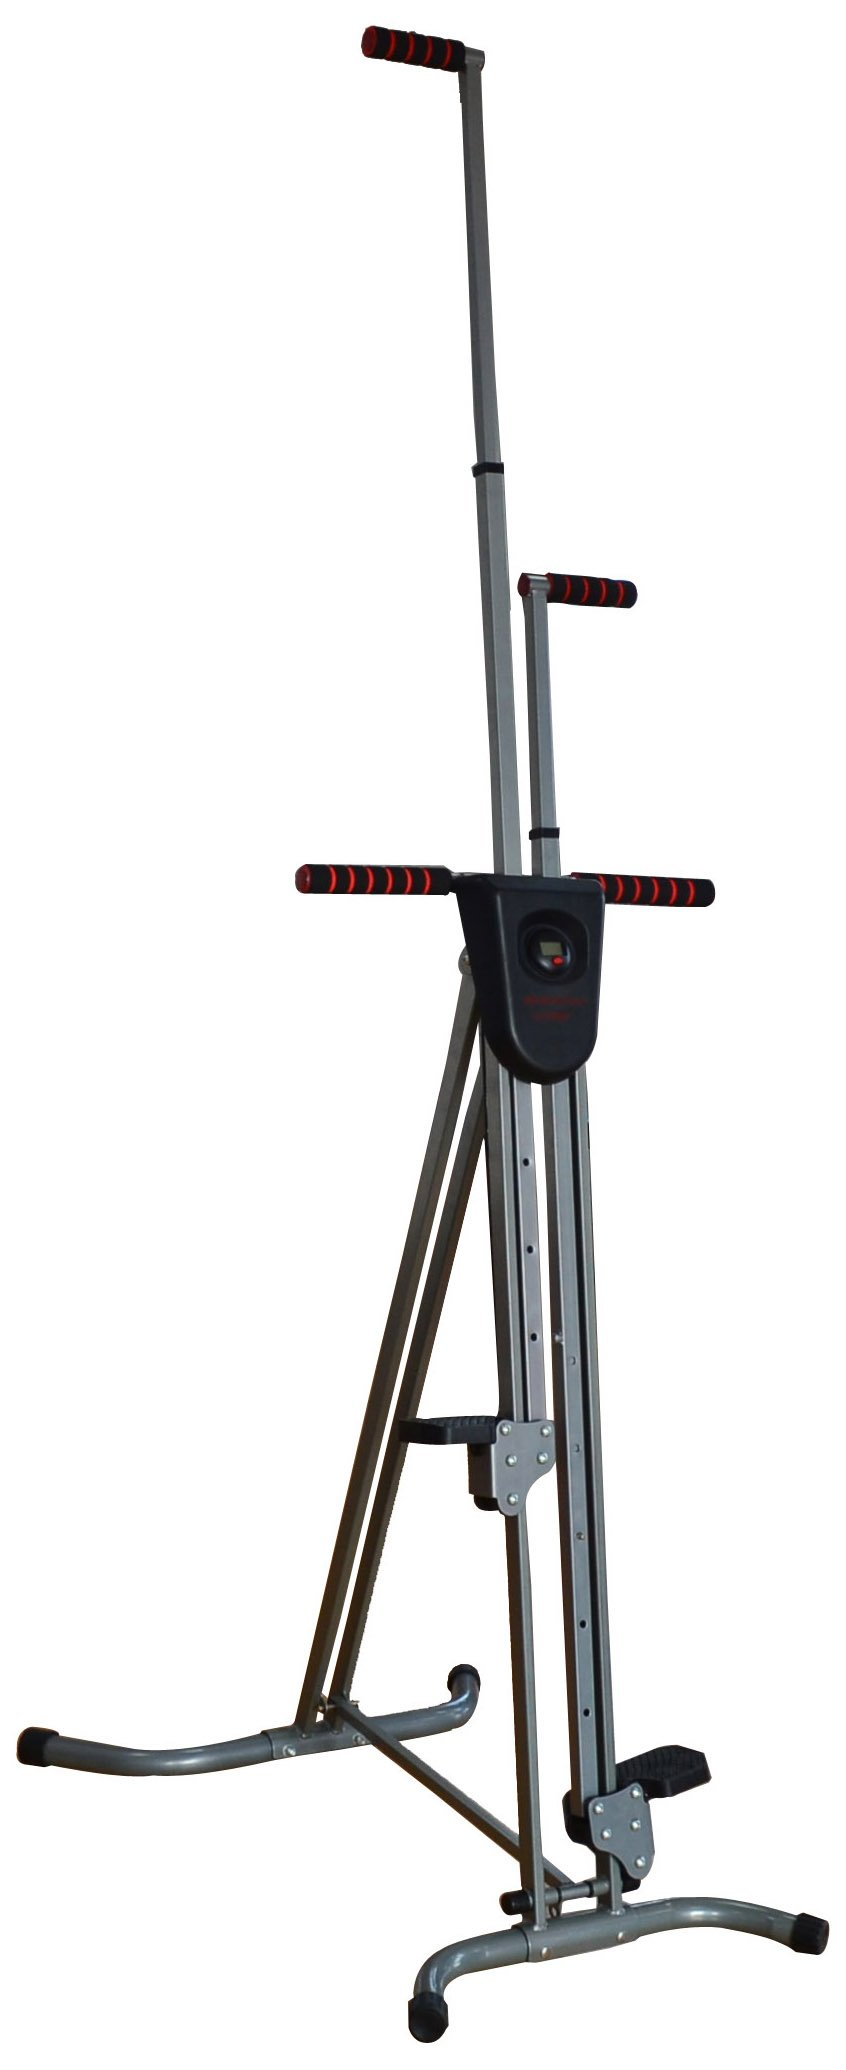 BalanceFrom Vertical Climber with Cast Iron Frame and Digital Display by BalanceFrom